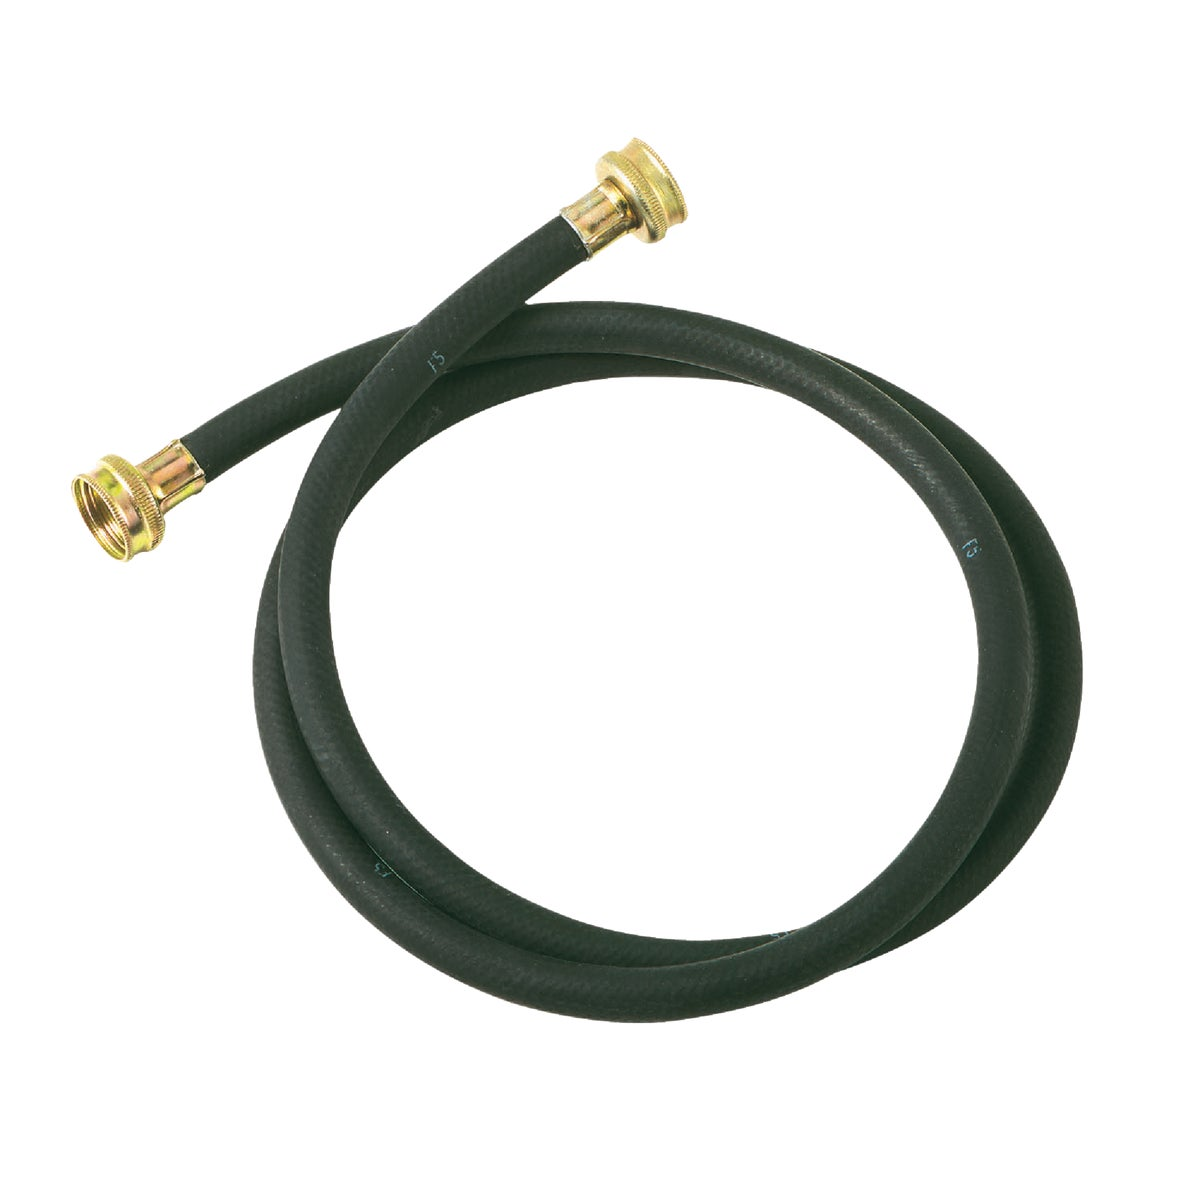 4' PRESSURE HOSE - 403938 by Wm H Harvey Co